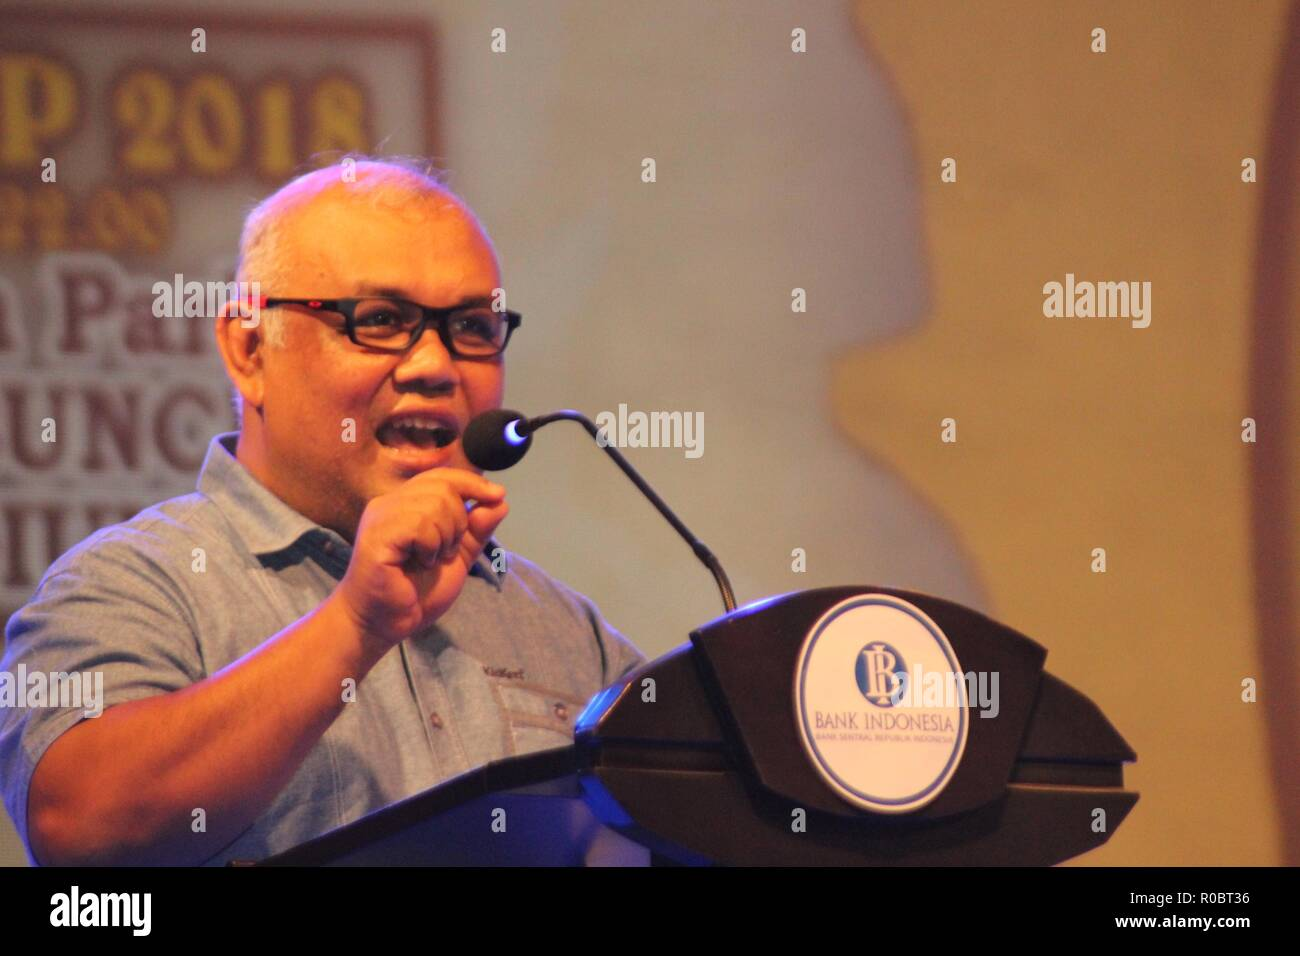 Madiun, Indonesia. 02nd Nov, 2018. Djoko Raharto, Head of Bank Indonesia Kediri Representative delivered his remarks during the night of the People's Coffee Party which was held in the parking lot of one of the hotels in Madiun City Credit: Ajun Ally/Pacific Press/Alamy Live News - Stock Image